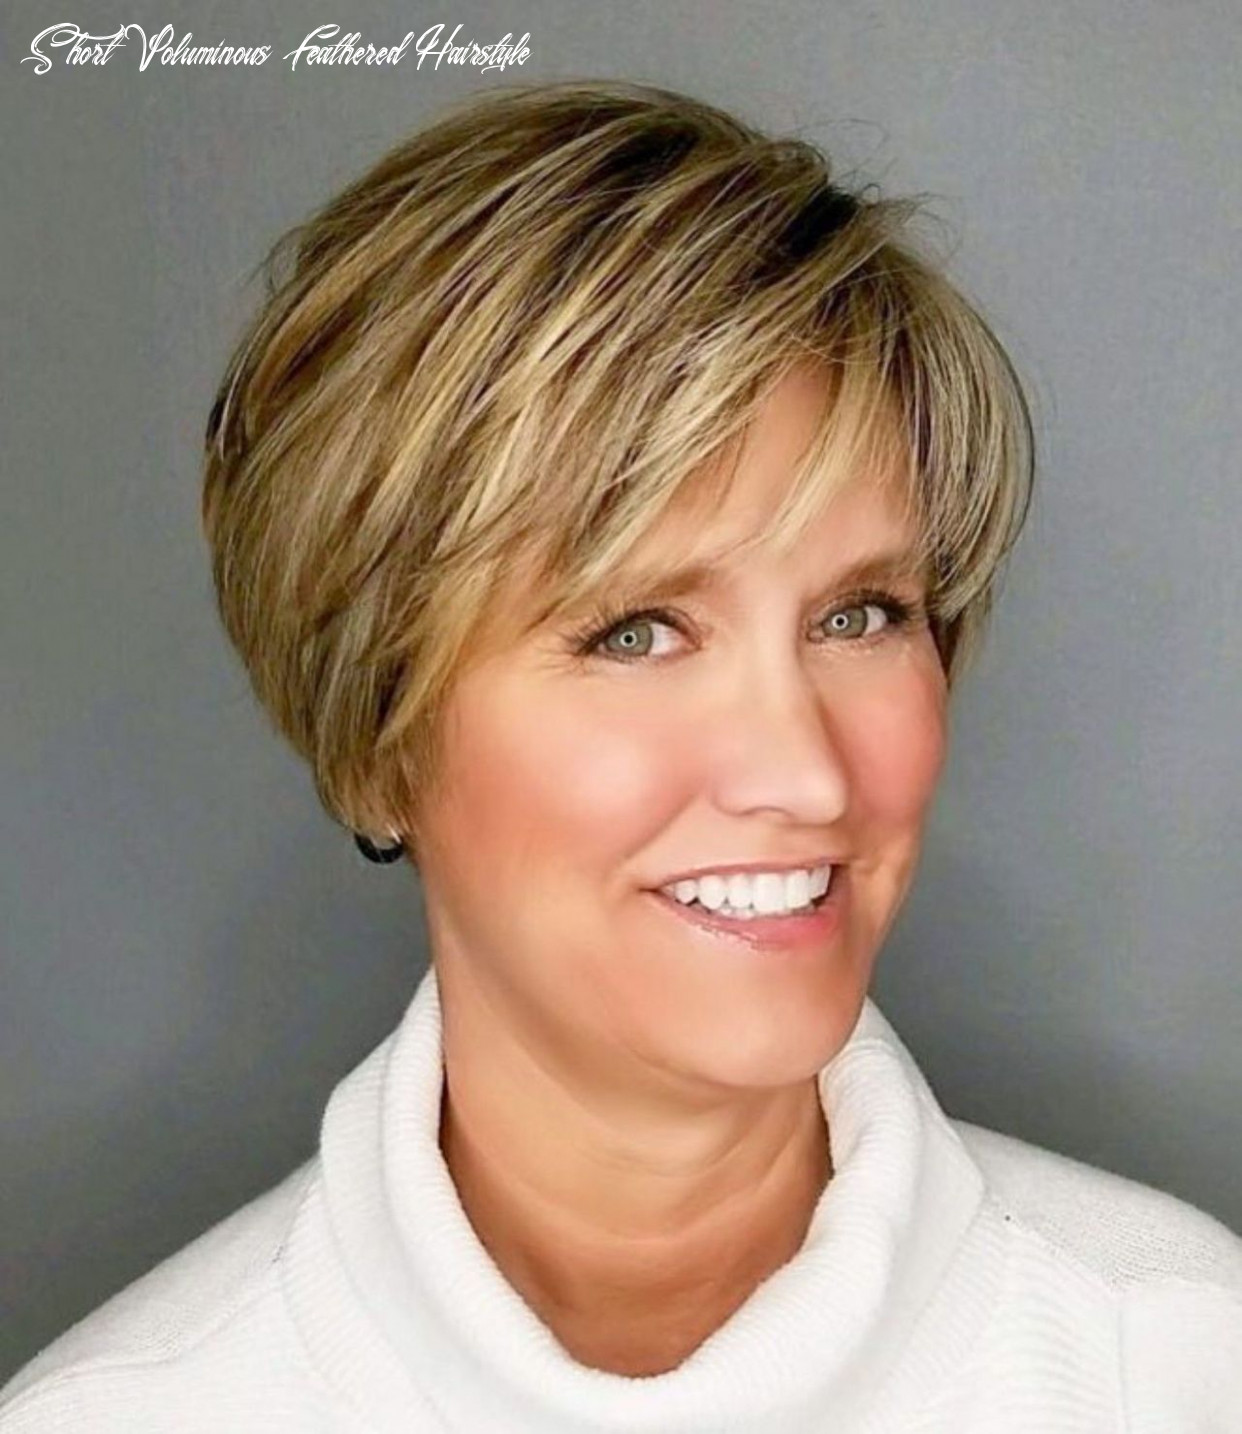 11 classy and simple short hairstyles for women over 11   frisuren